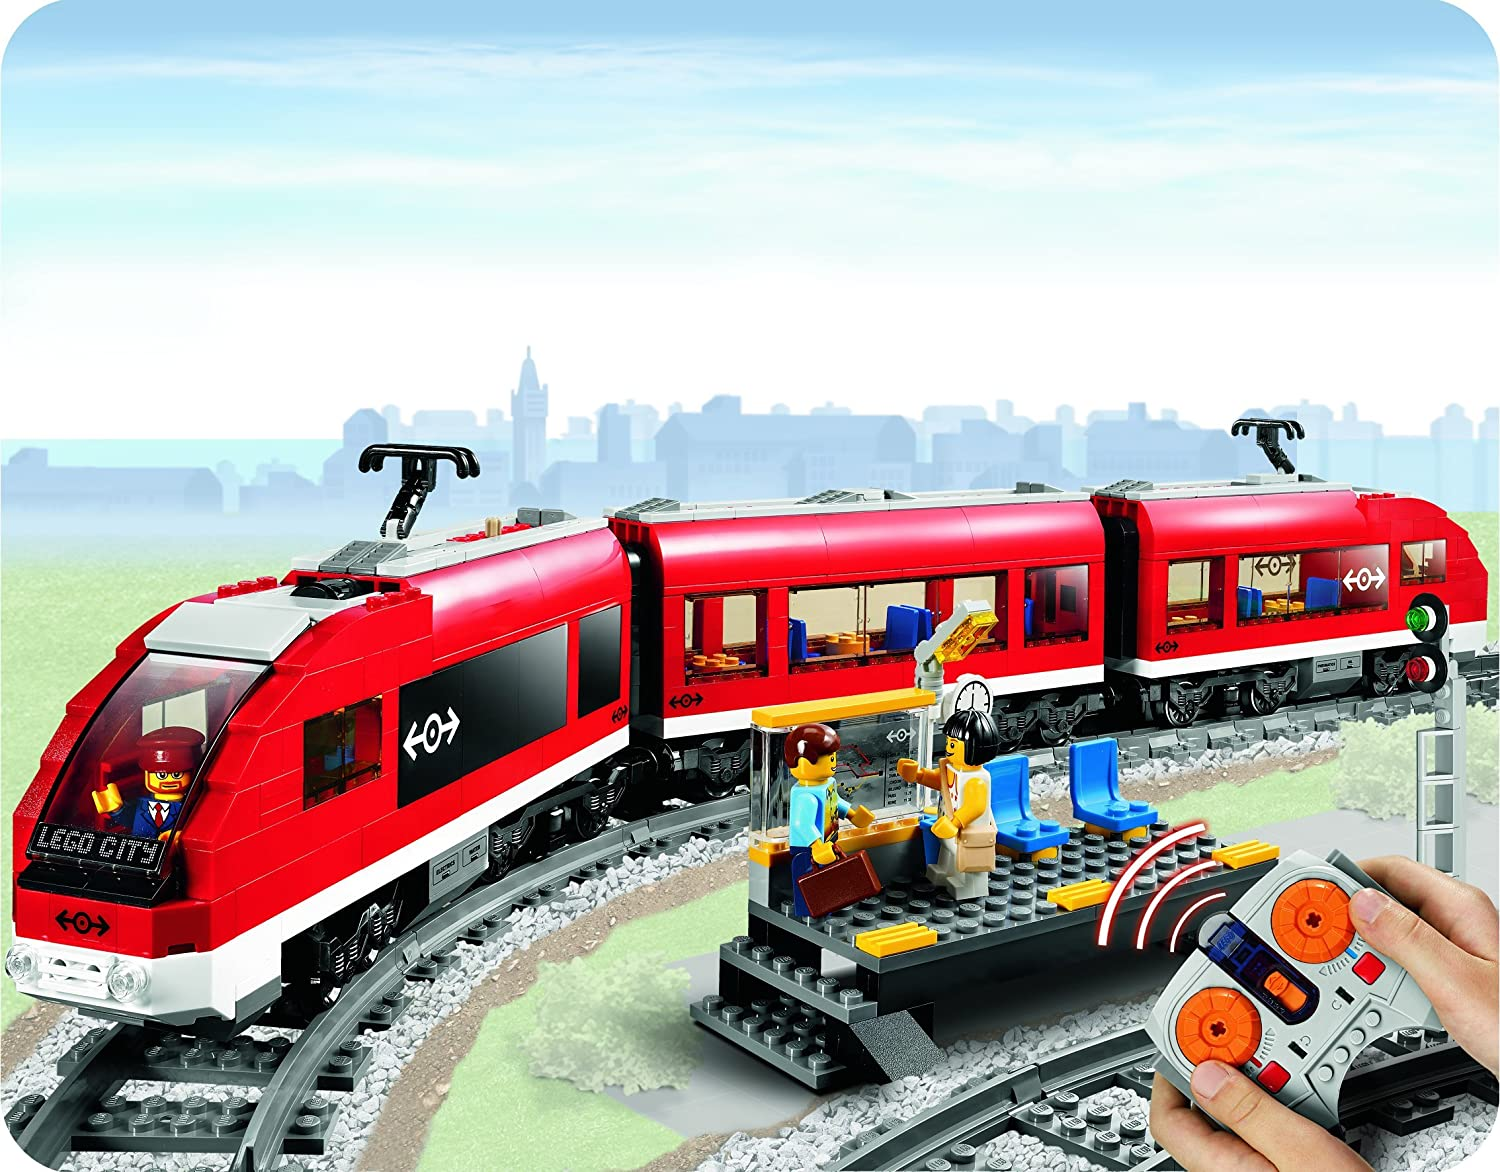 Lego City Passenger Train 7938 LEGO City Passenger Train